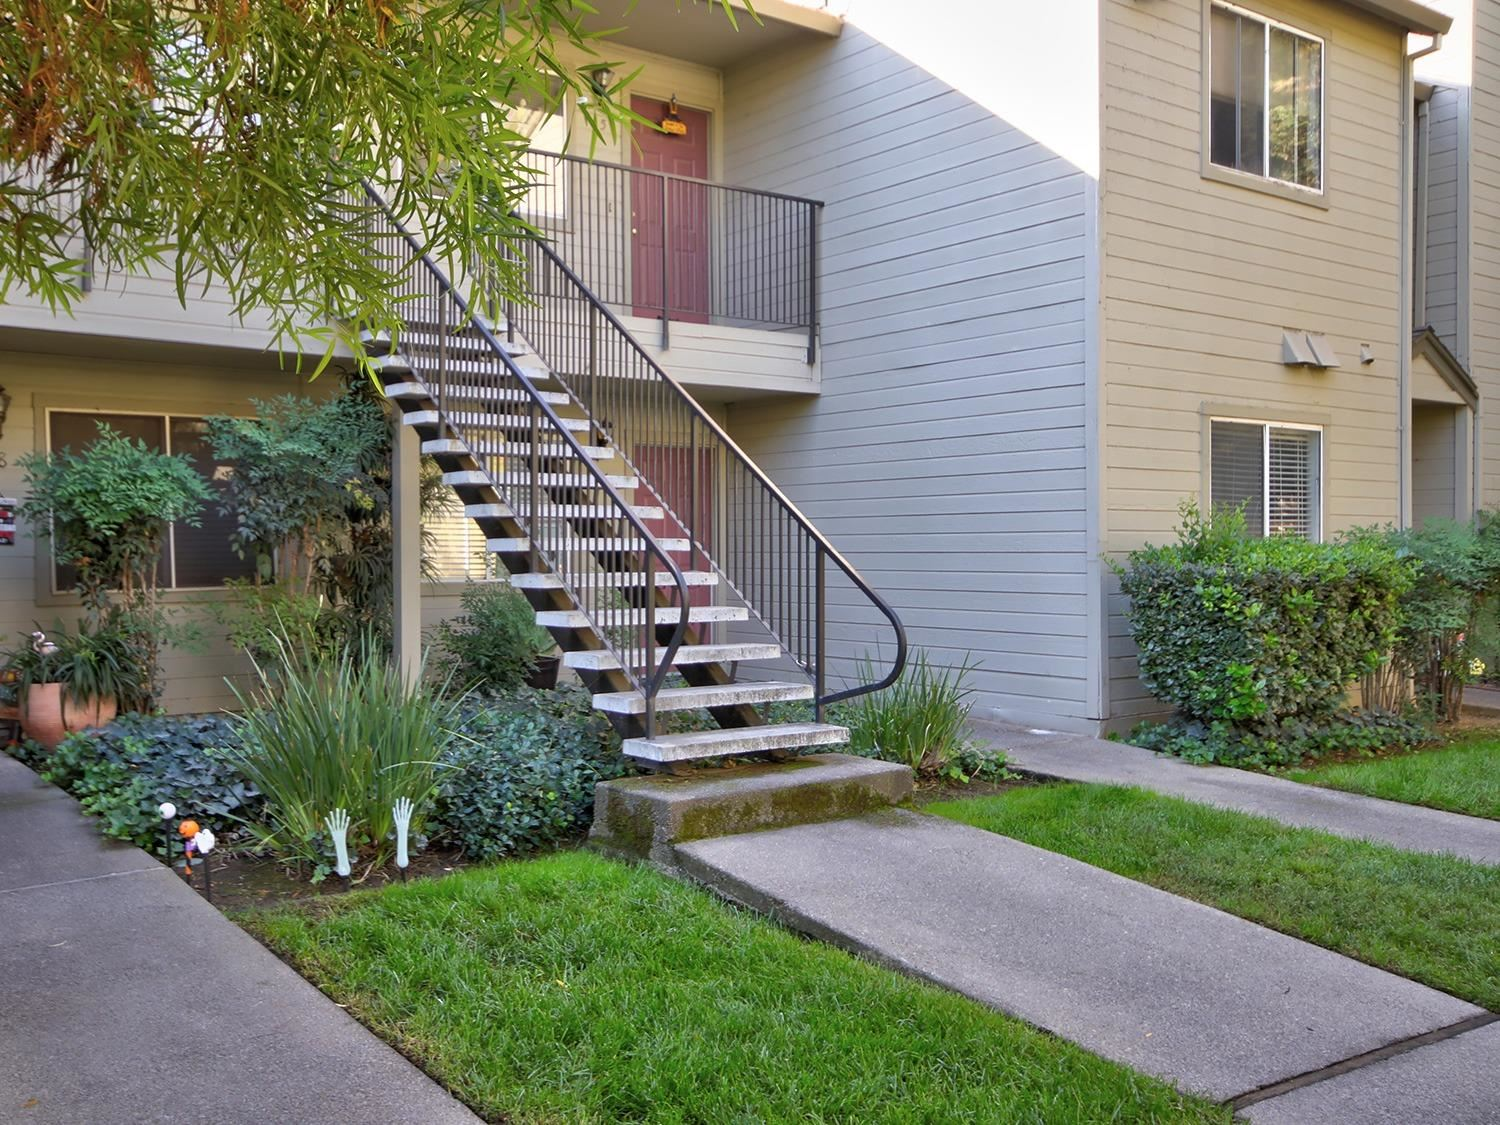 Photo of 9123 Newhall Drive #46, Sacramento, CA 95826 (MLS # 20062899)